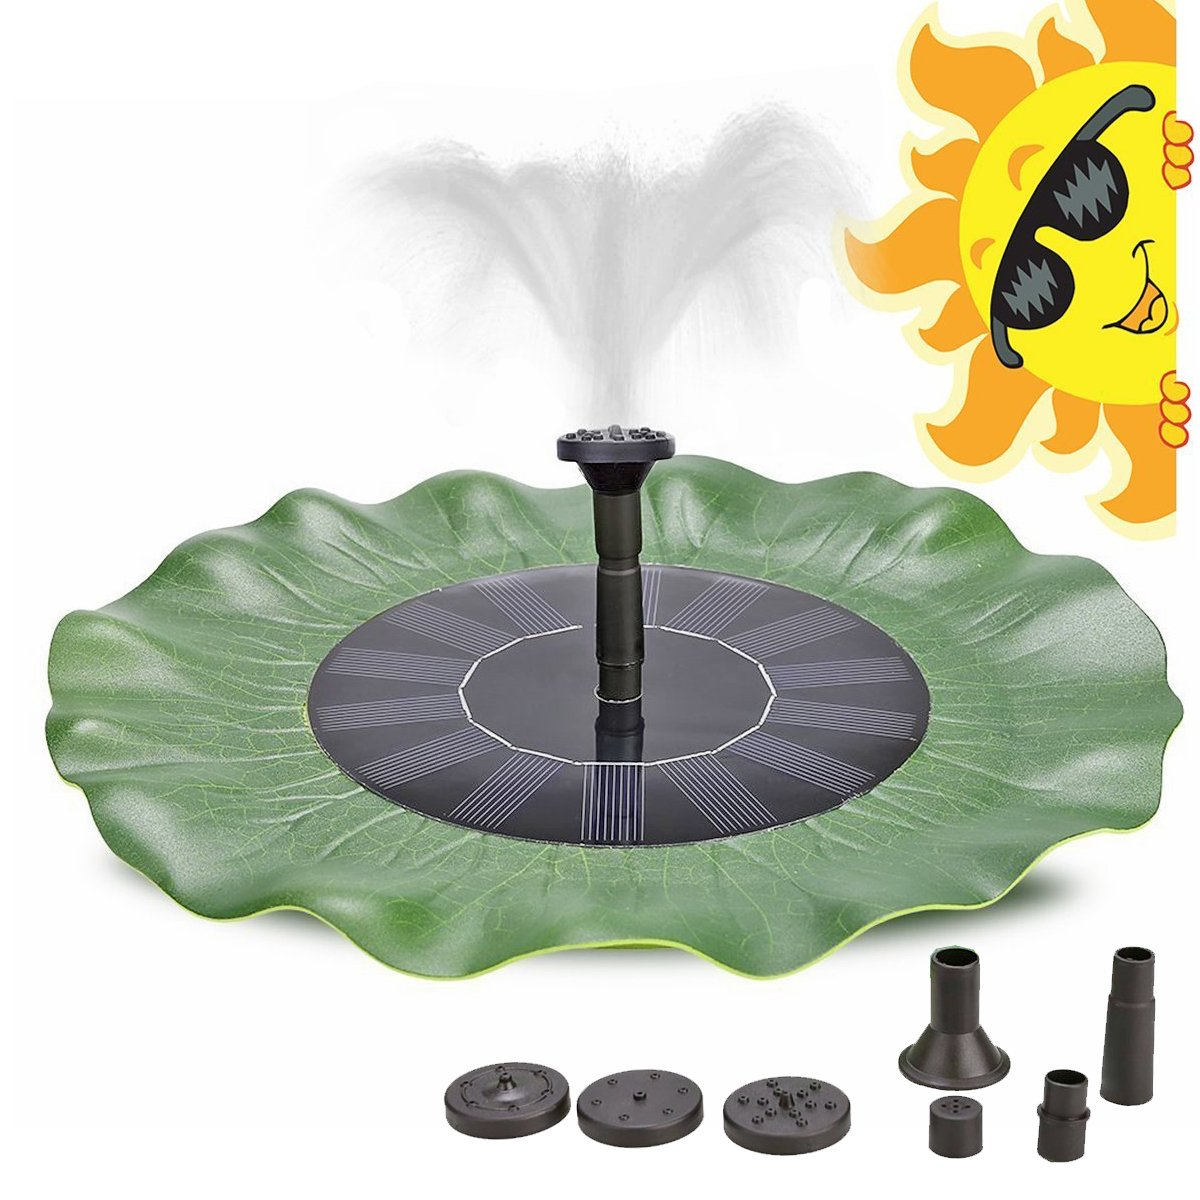 B2COOL Green Lotus Leaf Solar Fountain 8V 1.4W Decoration Kit with Micro Brushless Water Pump Submersible for Ponds Fountain and 4 Nozzle 200L/H Lift 20in